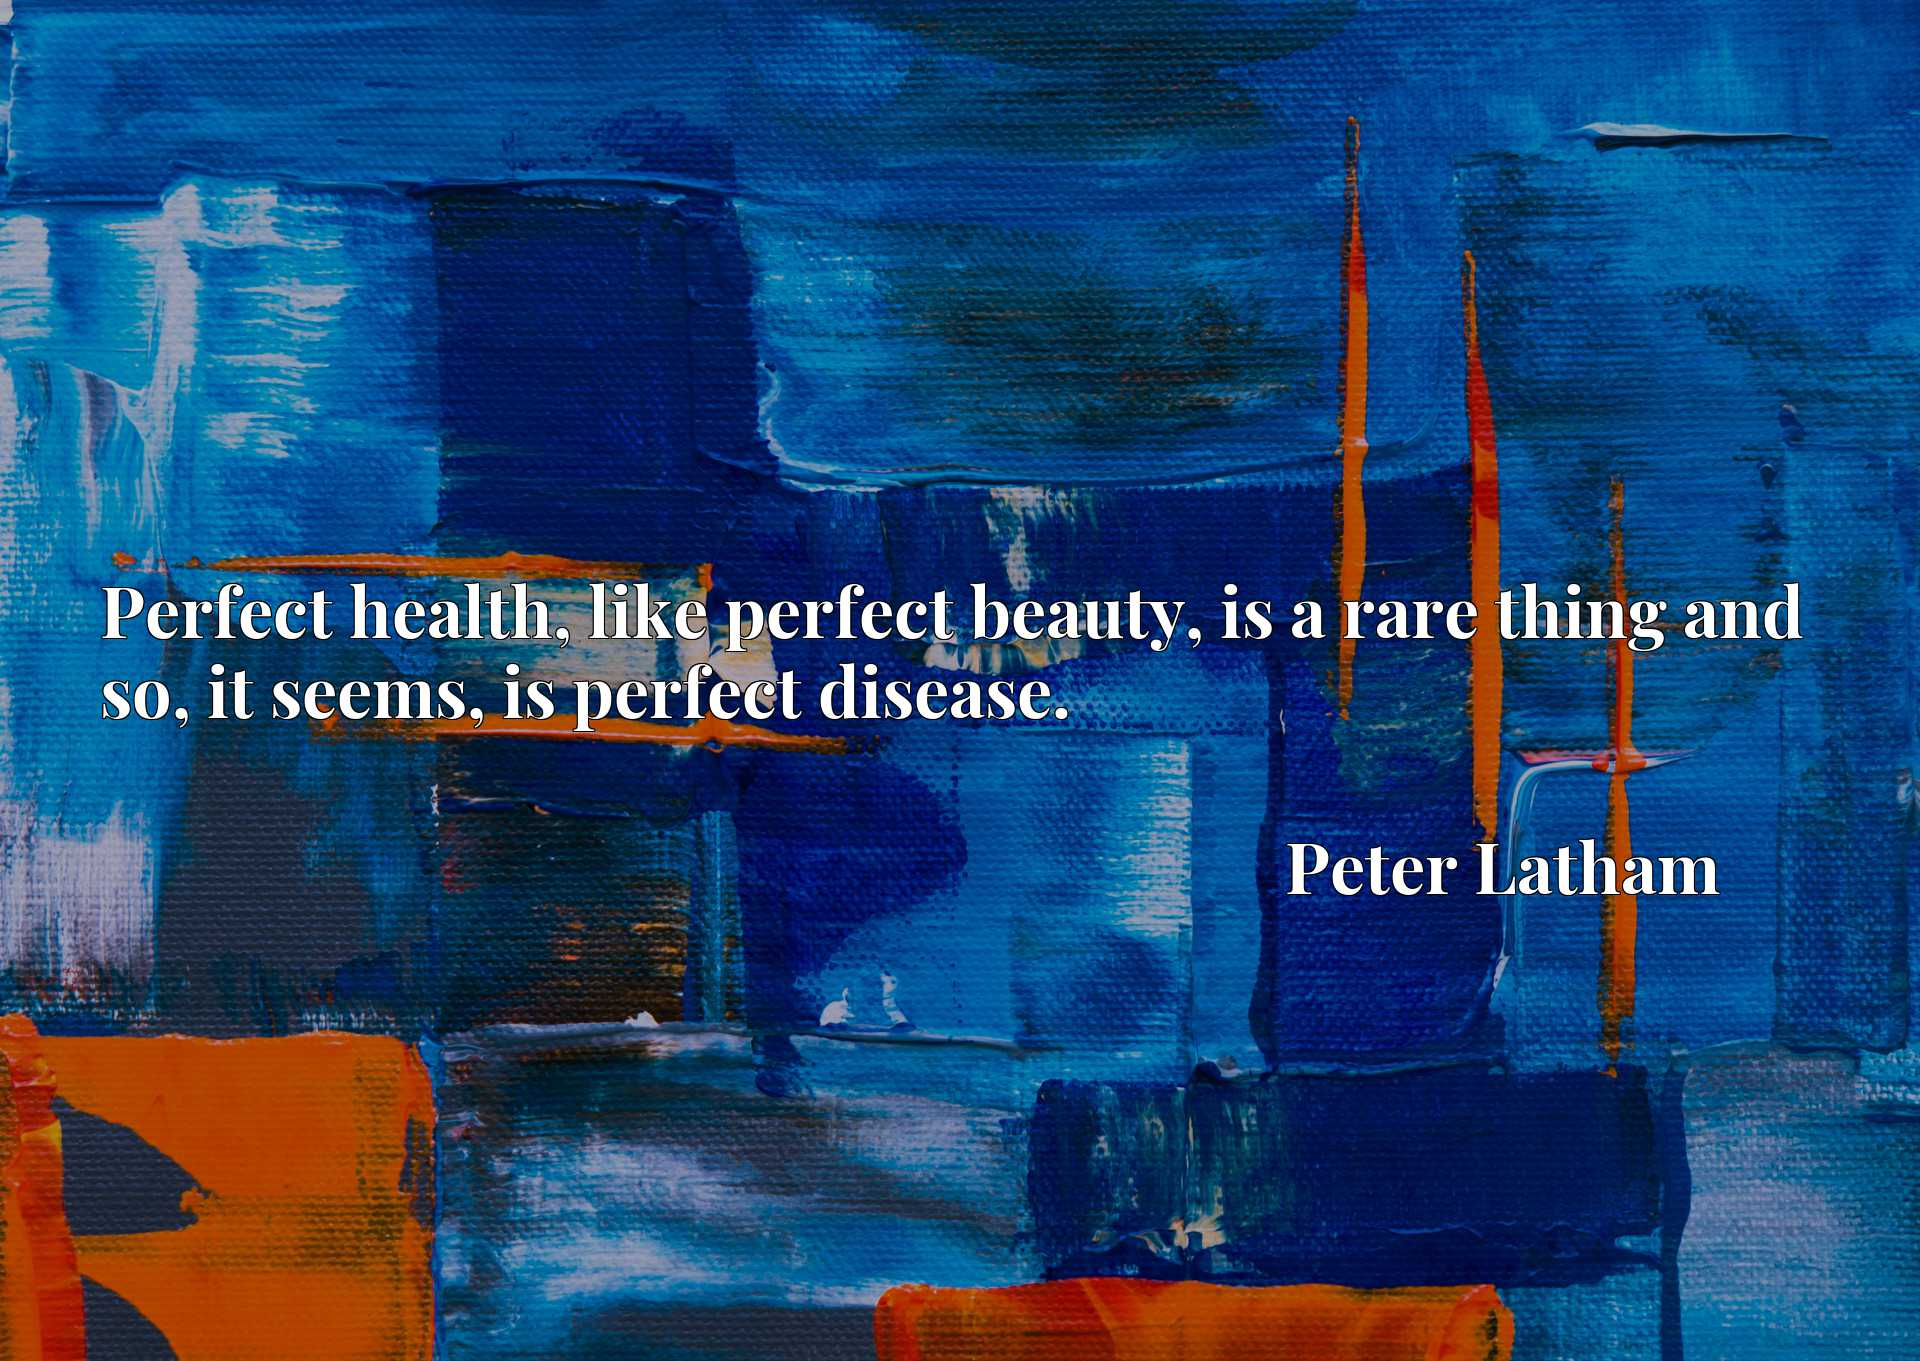 Perfect health, like perfect beauty, is a rare thing and so, it seems, is perfect disease.